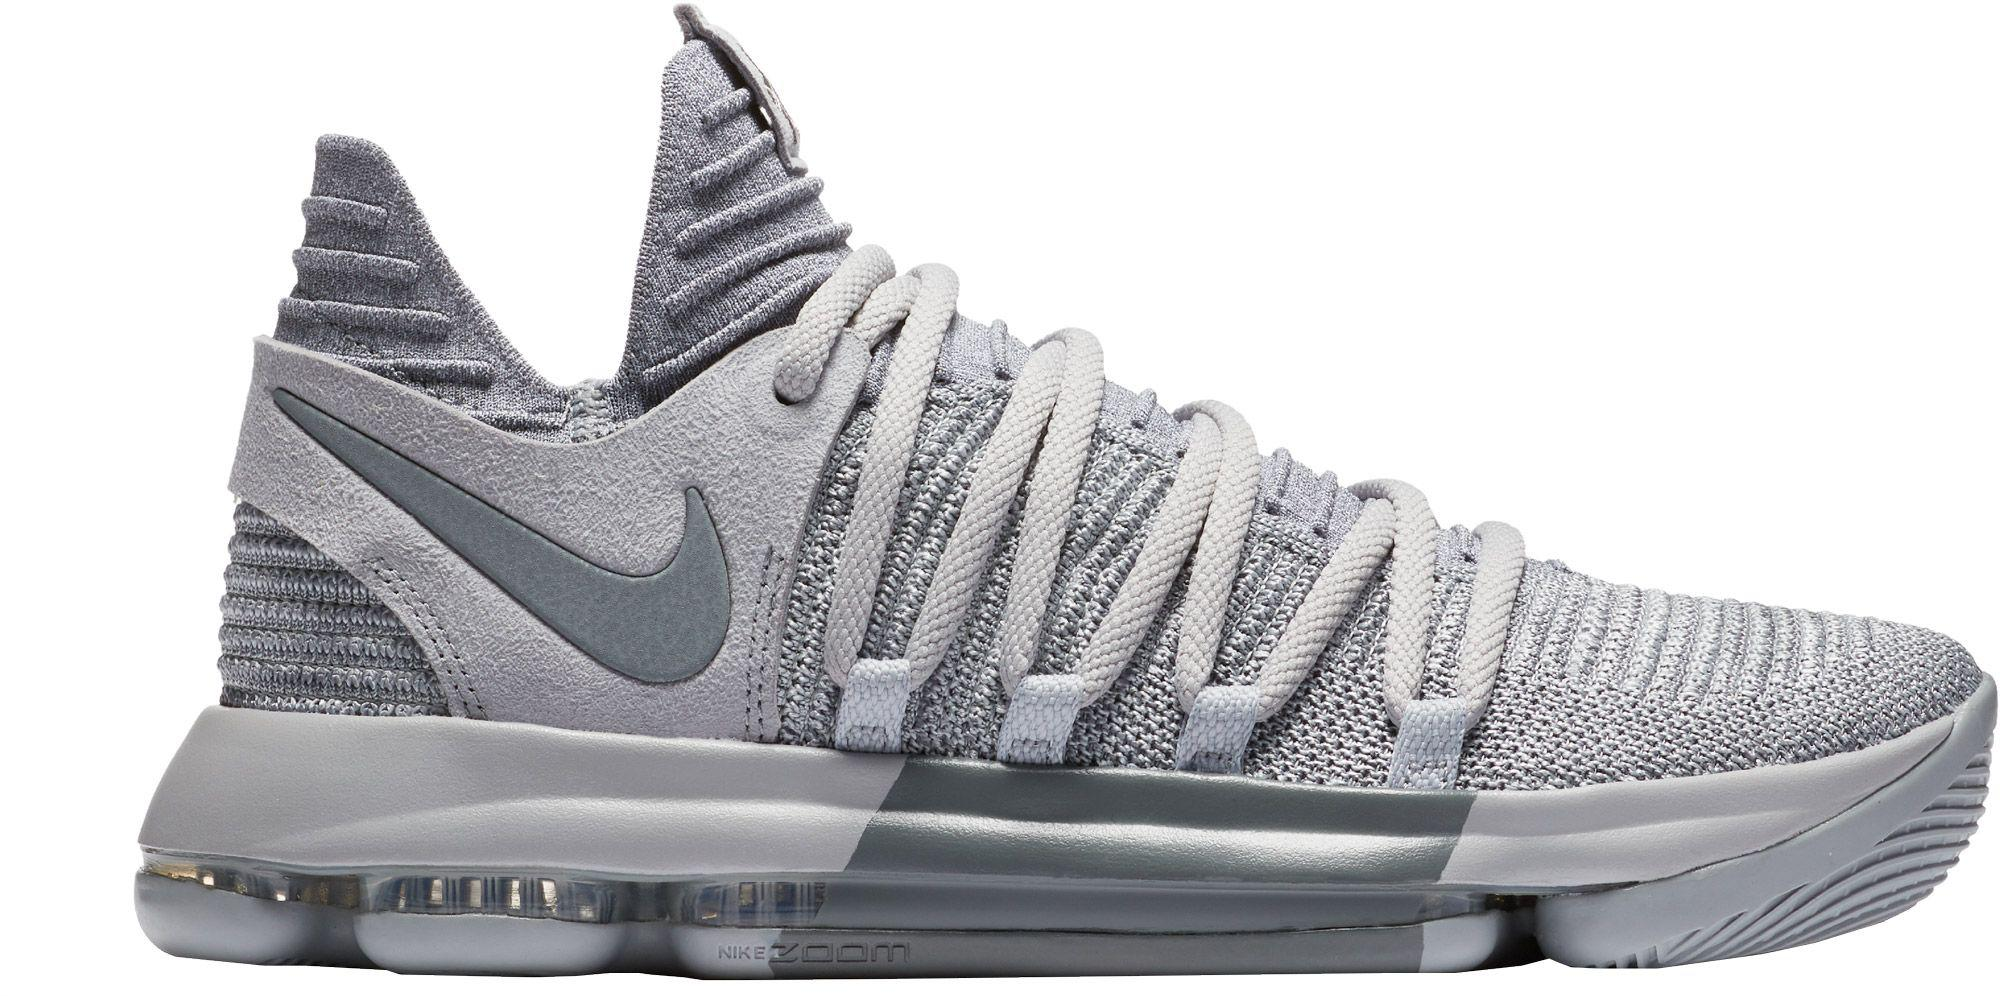 newest c75c7 1168d Lyst - Nike Zoom Kd 10 Basketball Shoes in Gray for Men